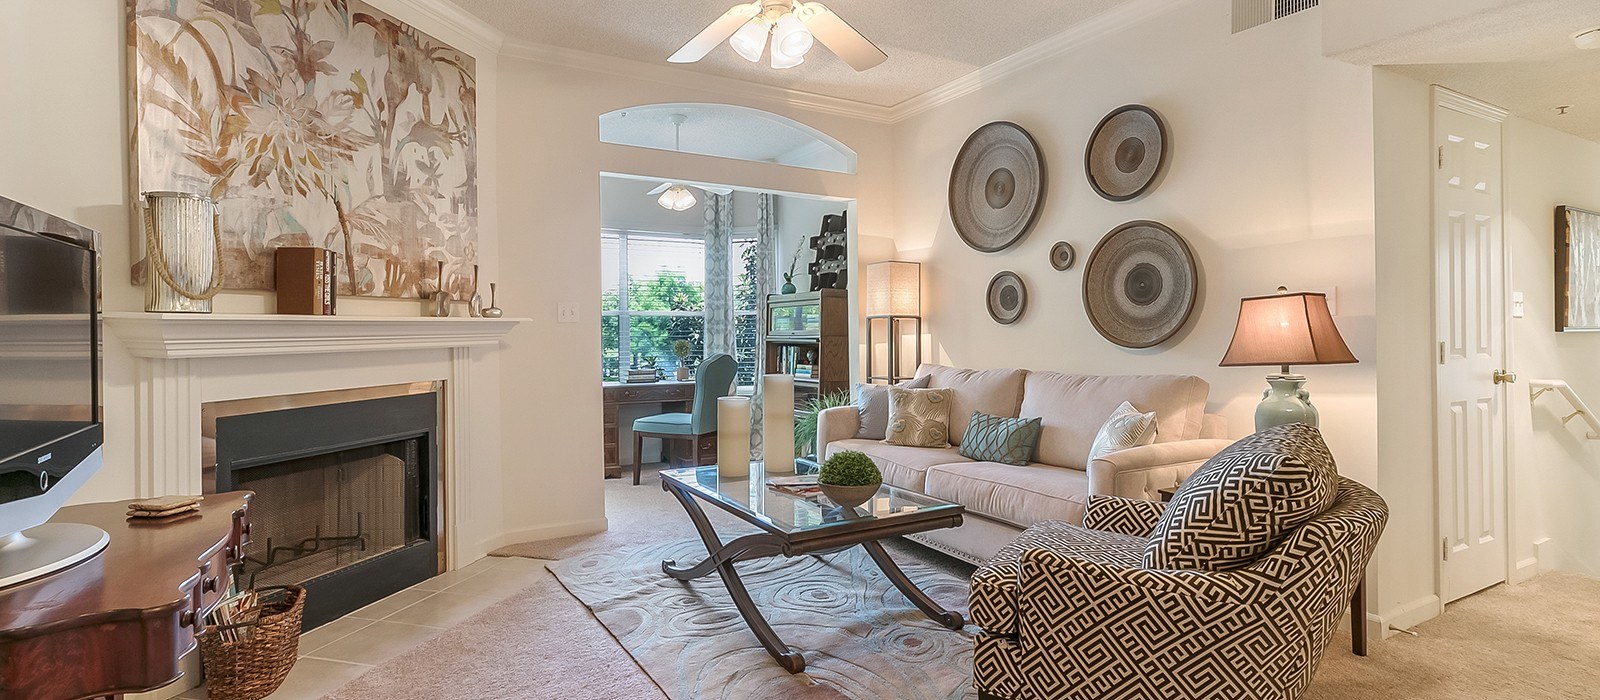 Lakes Of Chateau Estates North Apartments In Kenner La 1 2 Bedroom Apartments For Rent